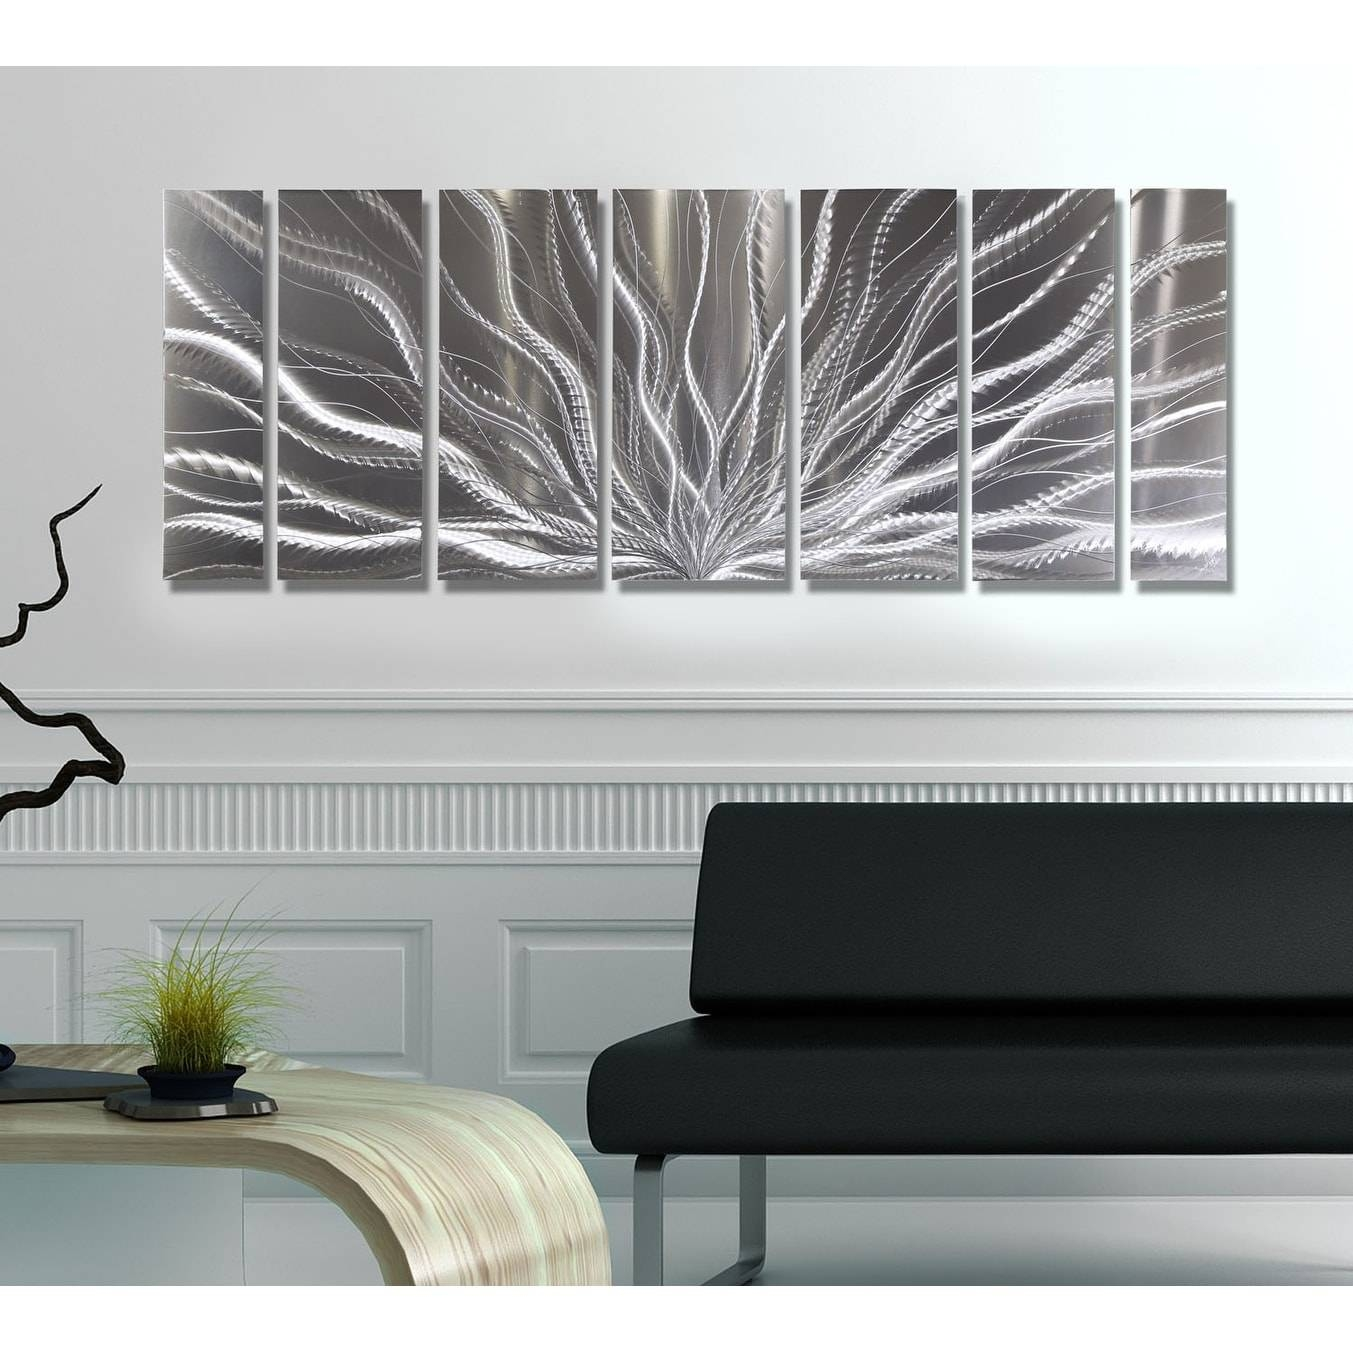 Statements2000 Silver Abstract Etched Metal Wall Art Sculpture Inside Recent Etched Metal Wall Art (View 15 of 20)